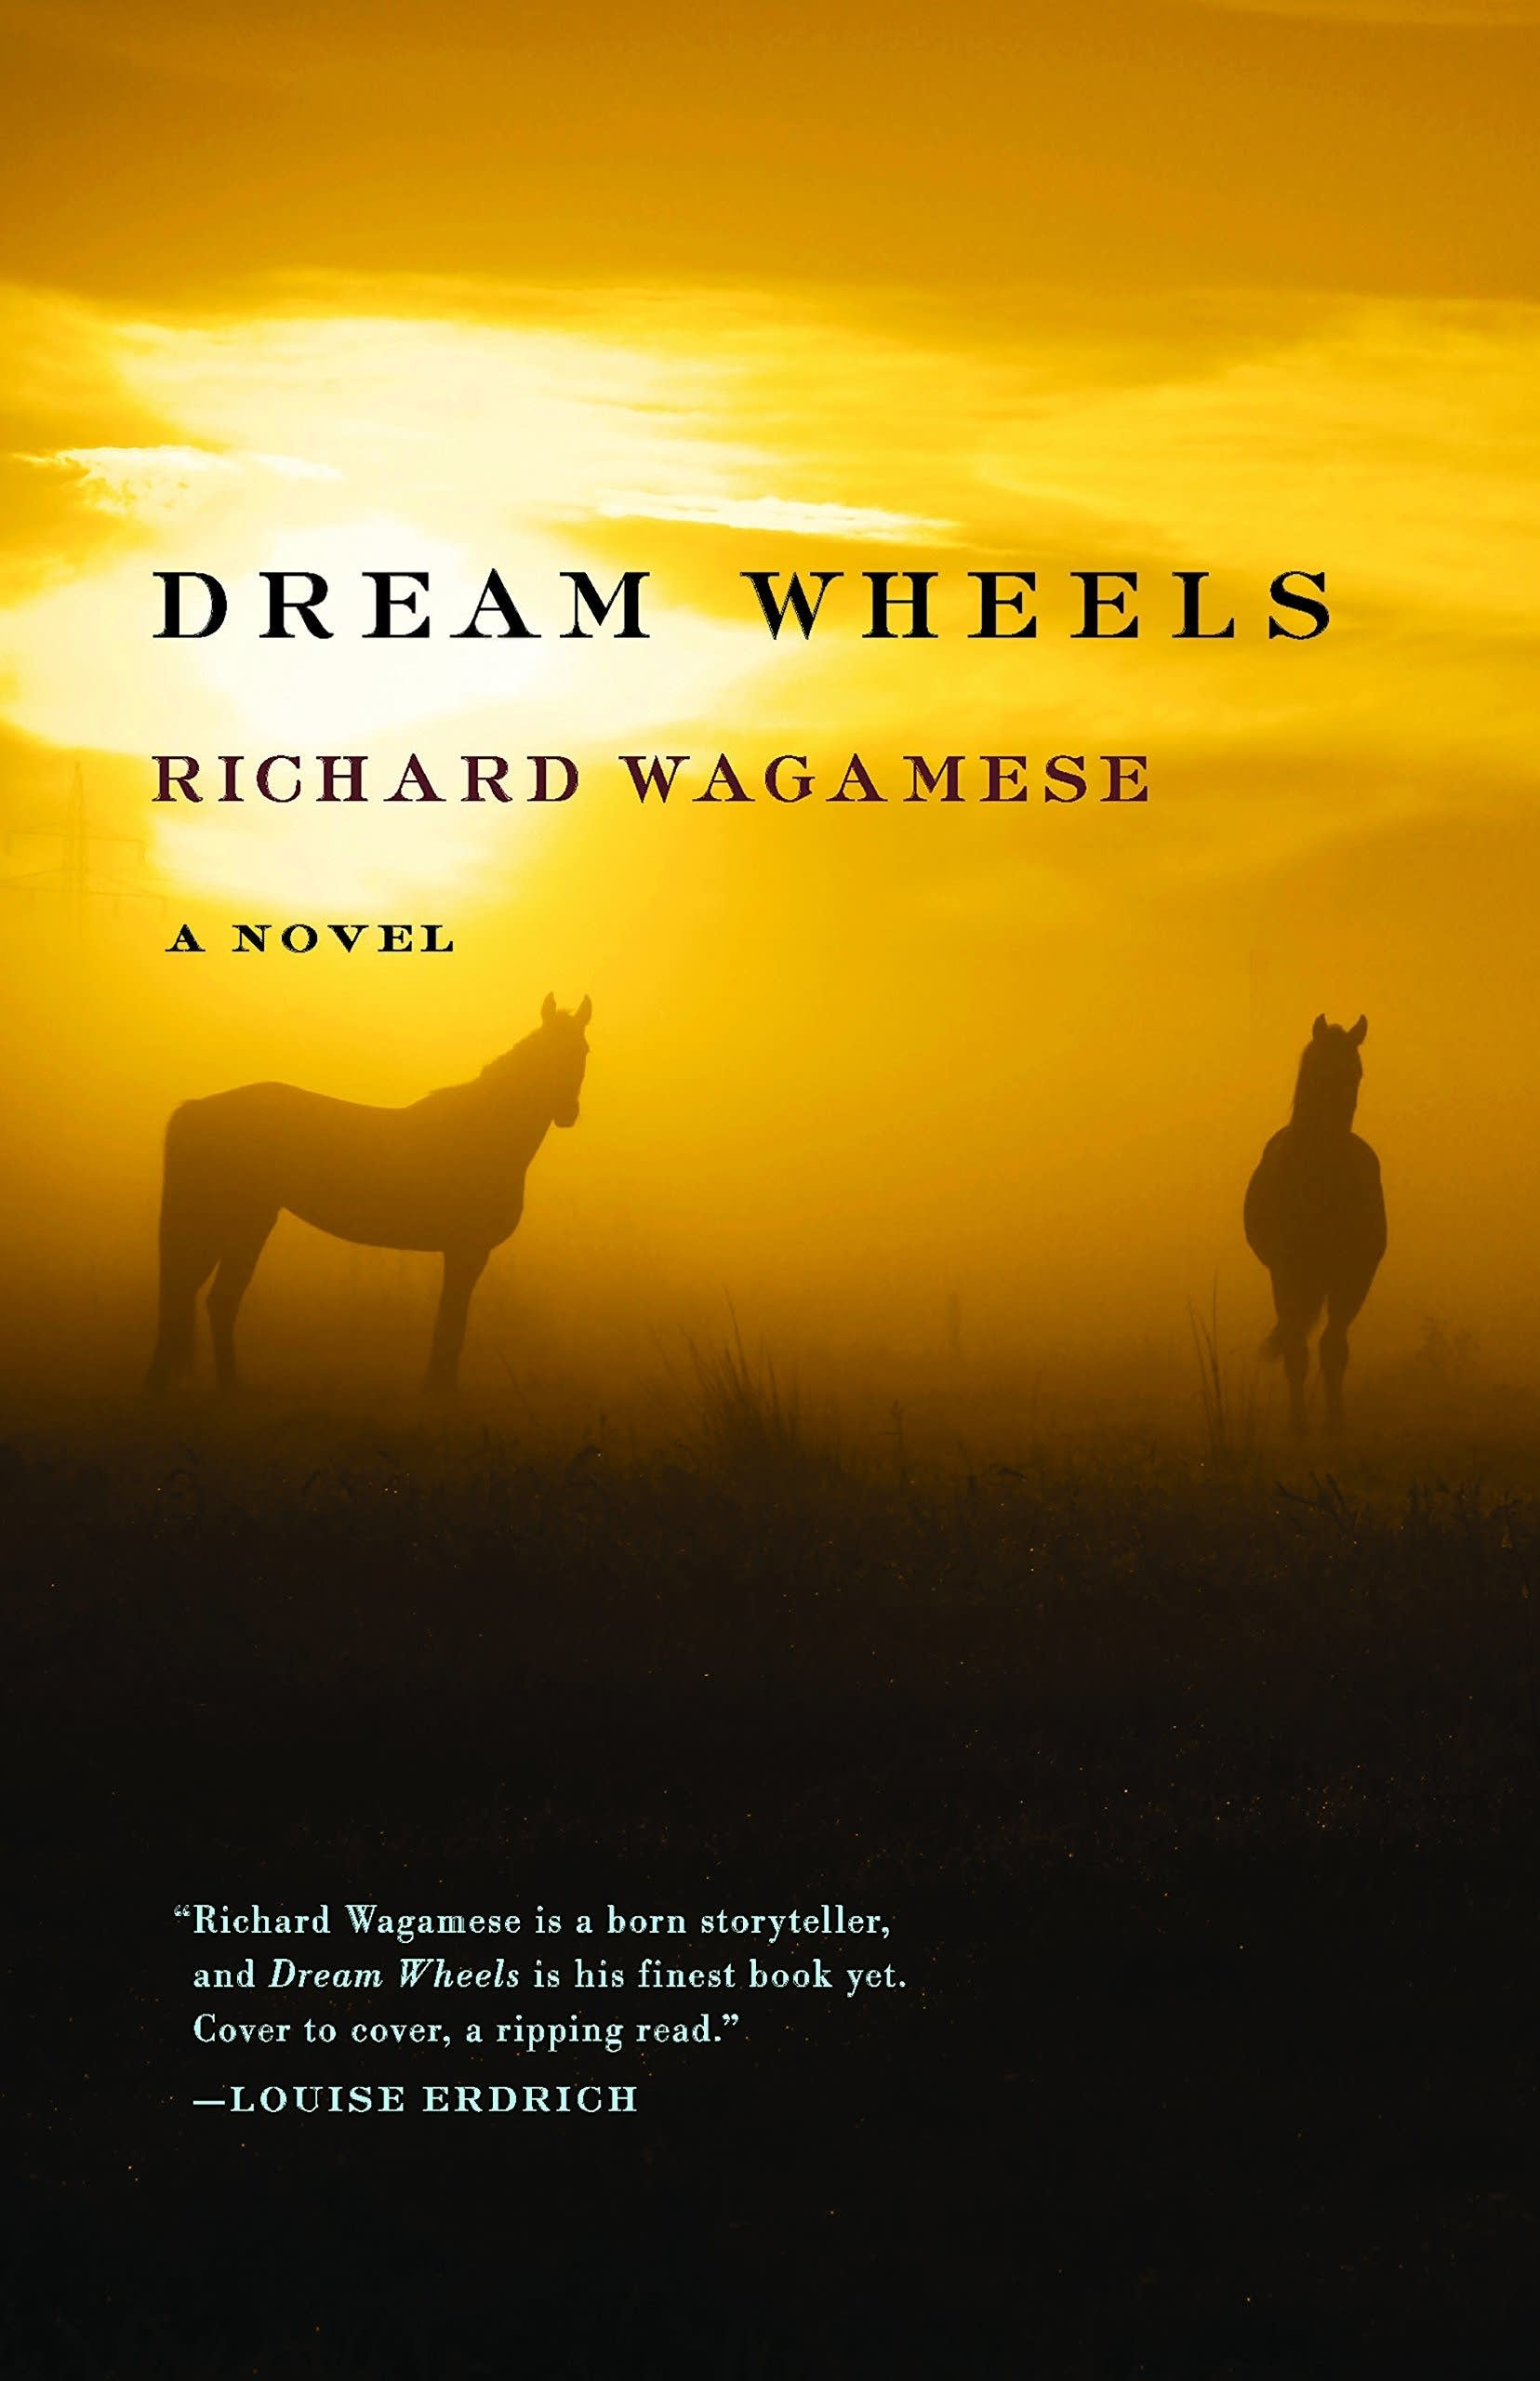 'Dream Wheels' by Richard Wagamese